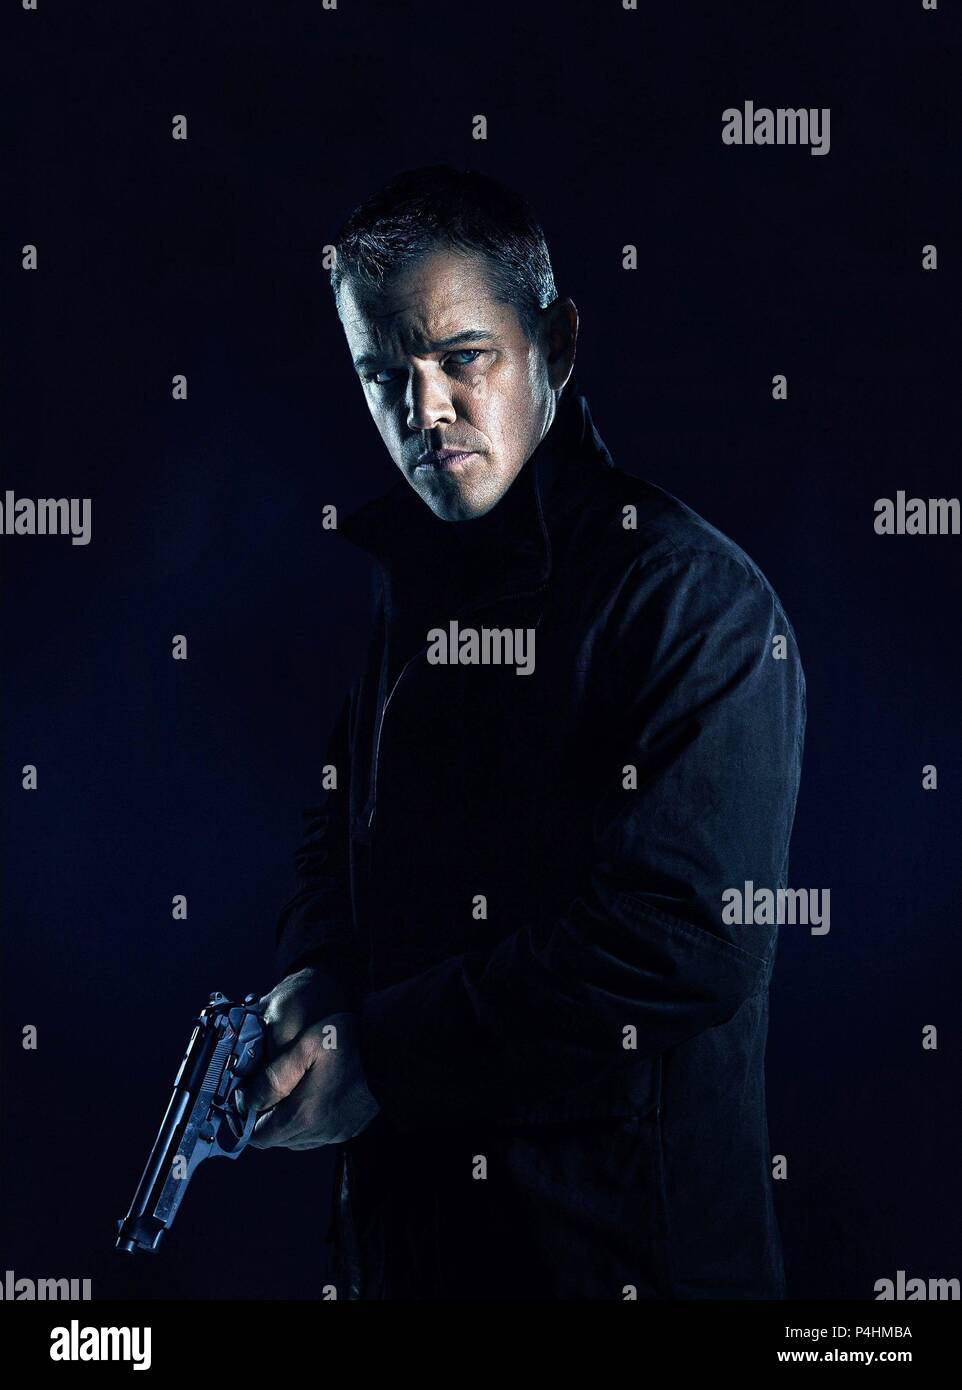 Original Film Title Jason Bourne English Title Jason Bourne Film Director Paul Greengrass Year 2016 Stars Matt Damon Credit Universal Pictures Thekennedy Marshall Company Captivate Ent Album Stock Photo Alamy